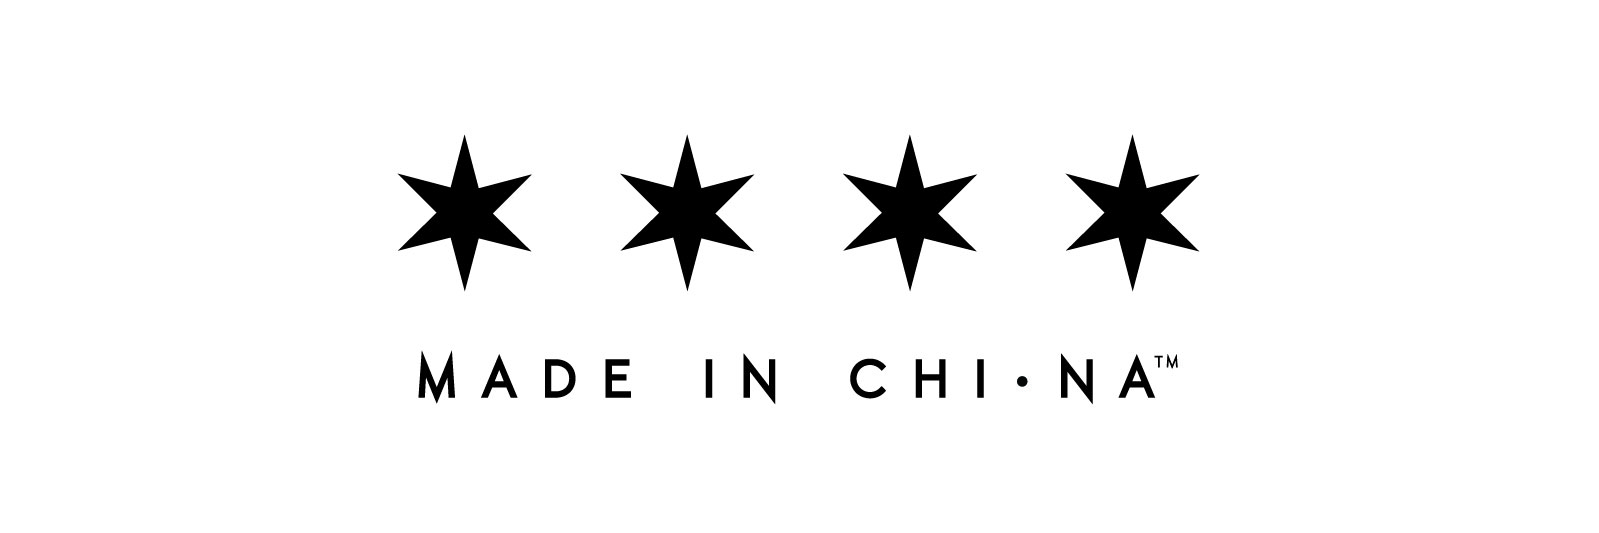 THE ØRDER is proudly created and produced in Chicago, North America.